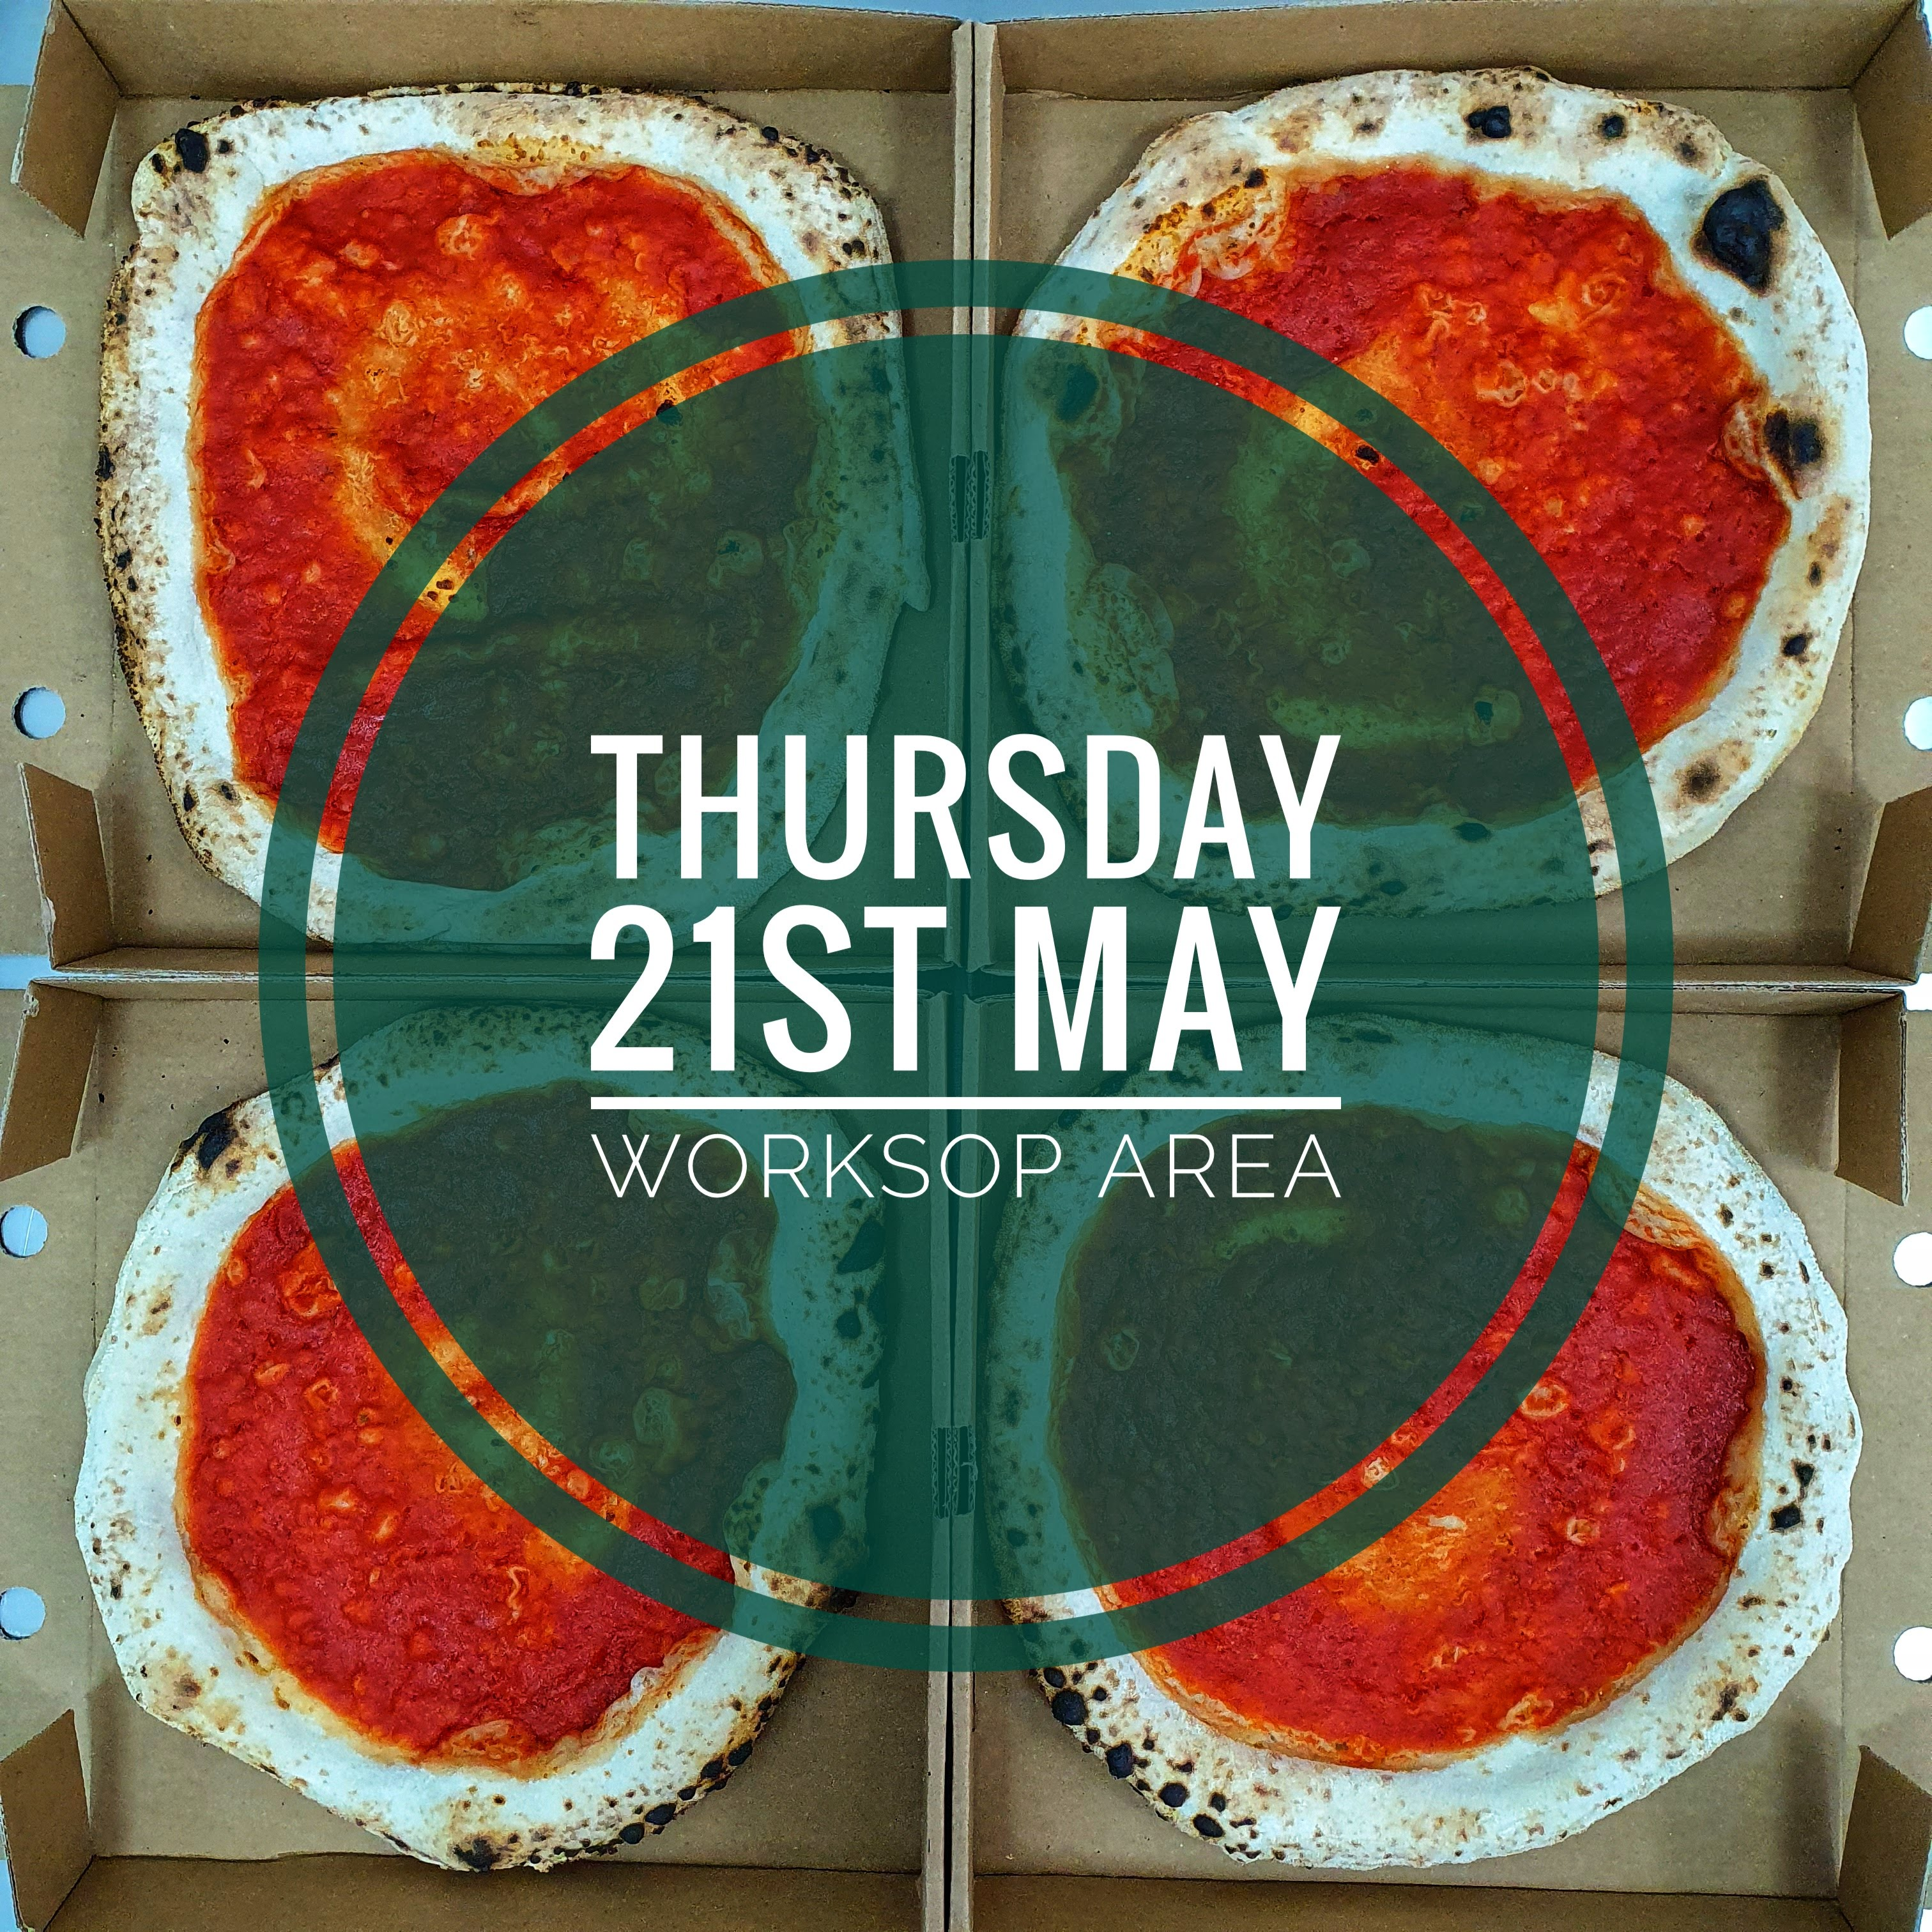 Sourdough Wood Fired Pizza Kit (THURSDAY 21st MAY WORKSOP AREA)